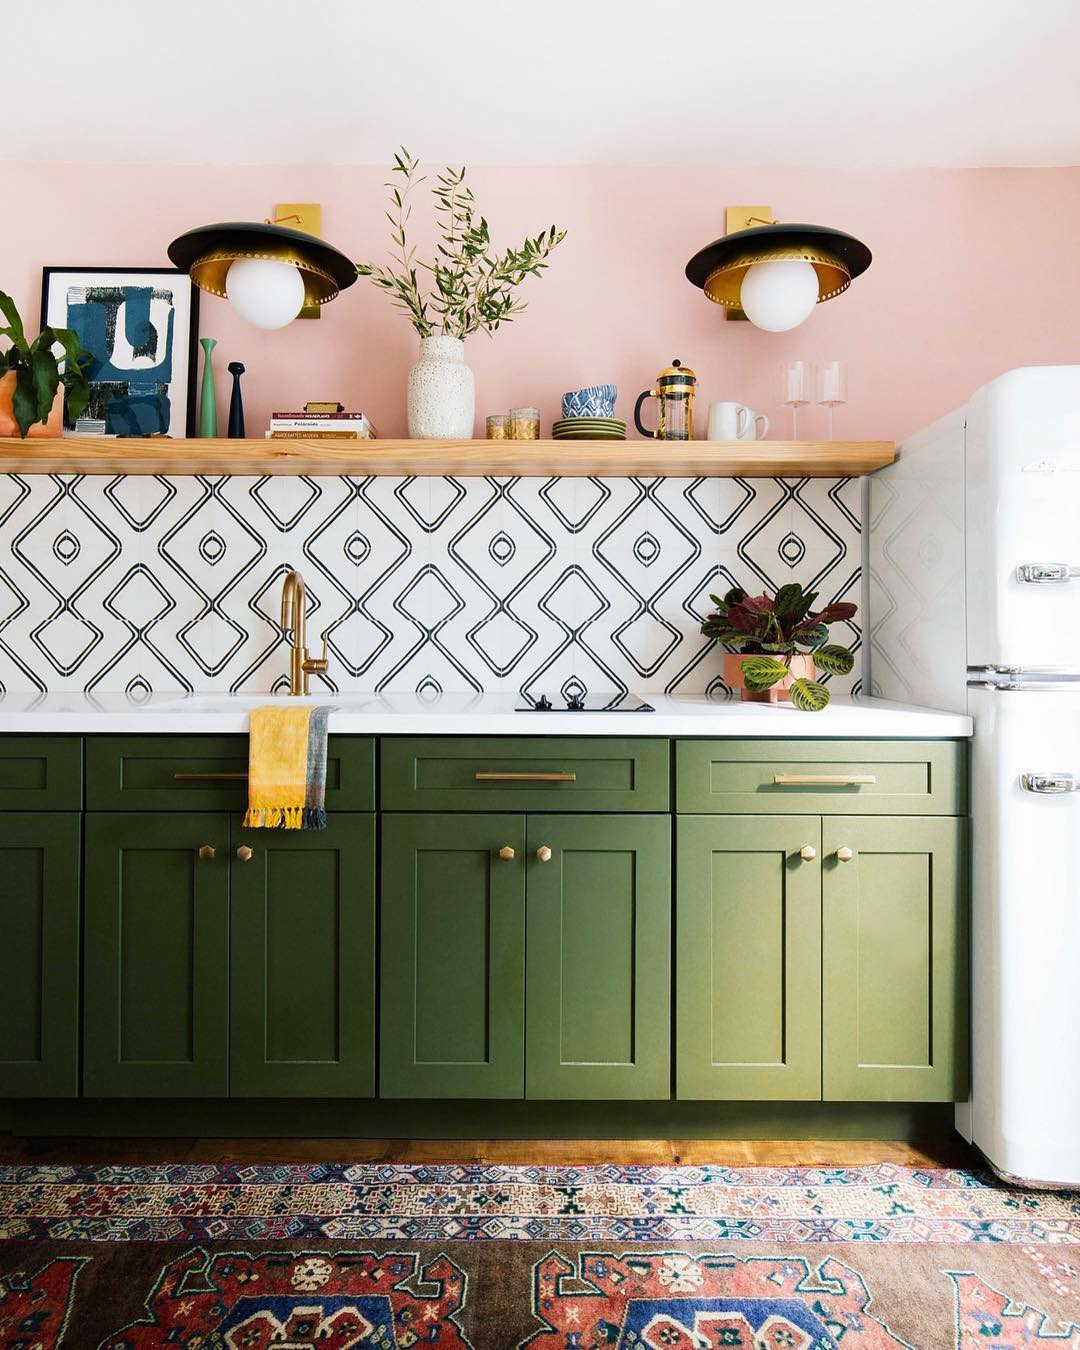 How to illuminate your kitchen countertop if you do not have upper cabinets or shelves 06